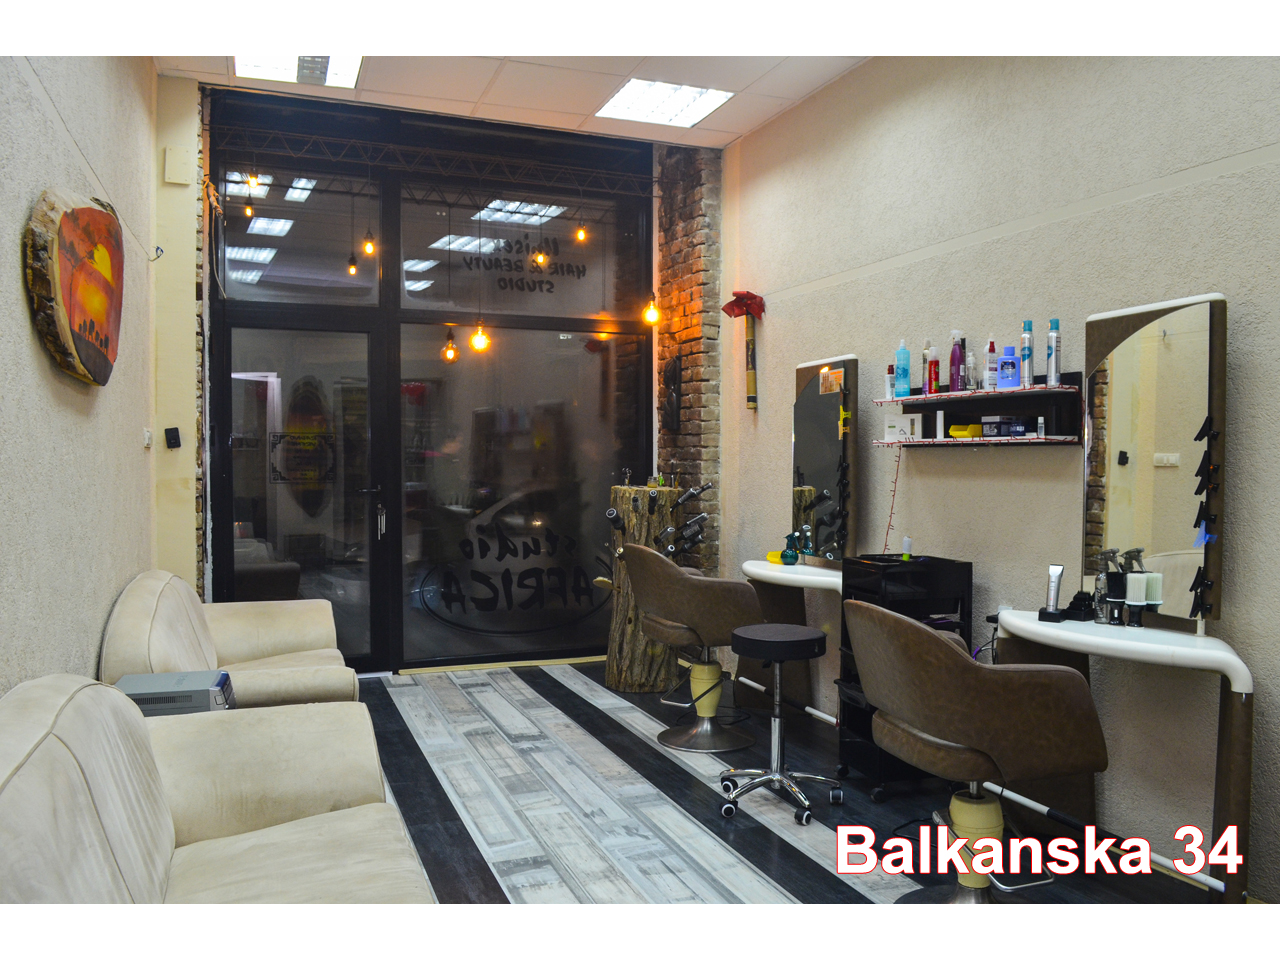 AFRICA HAIR BEAUTY STUDIO Hairdressers Beograd